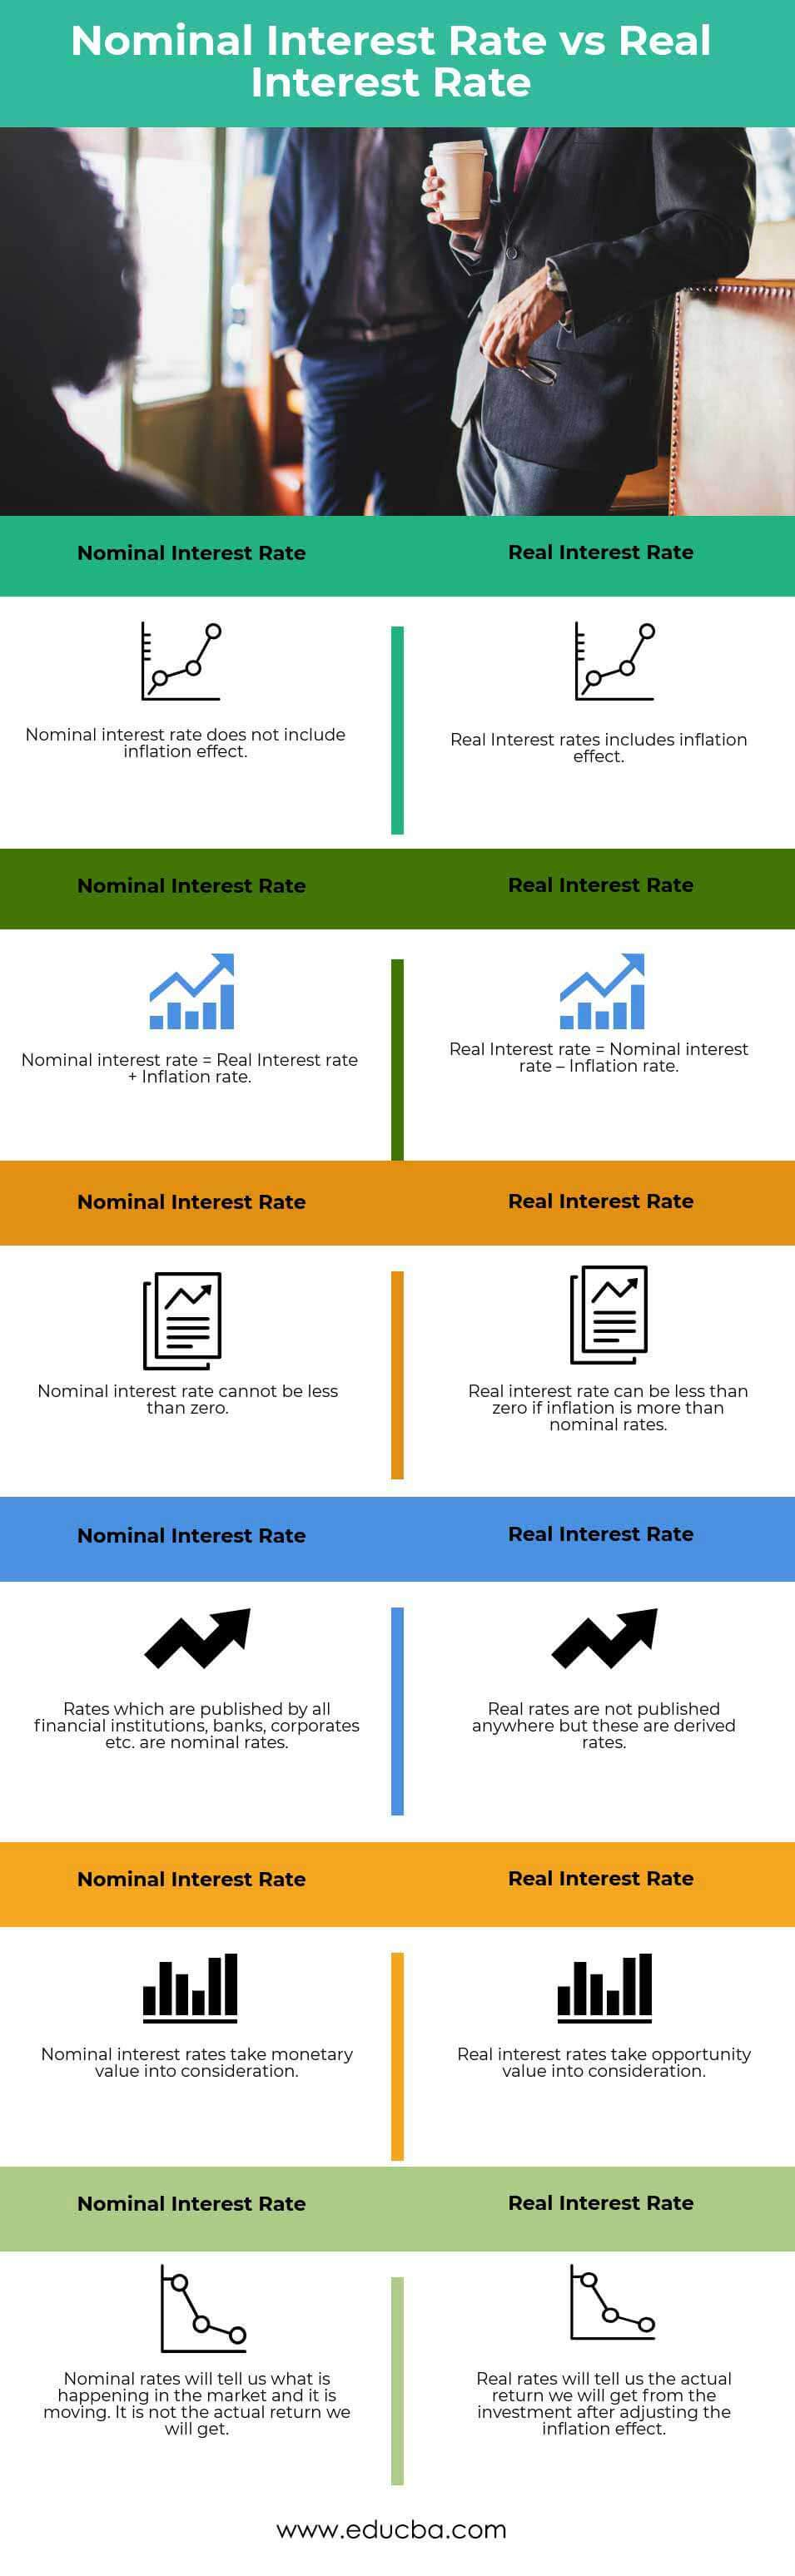 Nominal Interest Rate vs Real Interest Rate Infographics